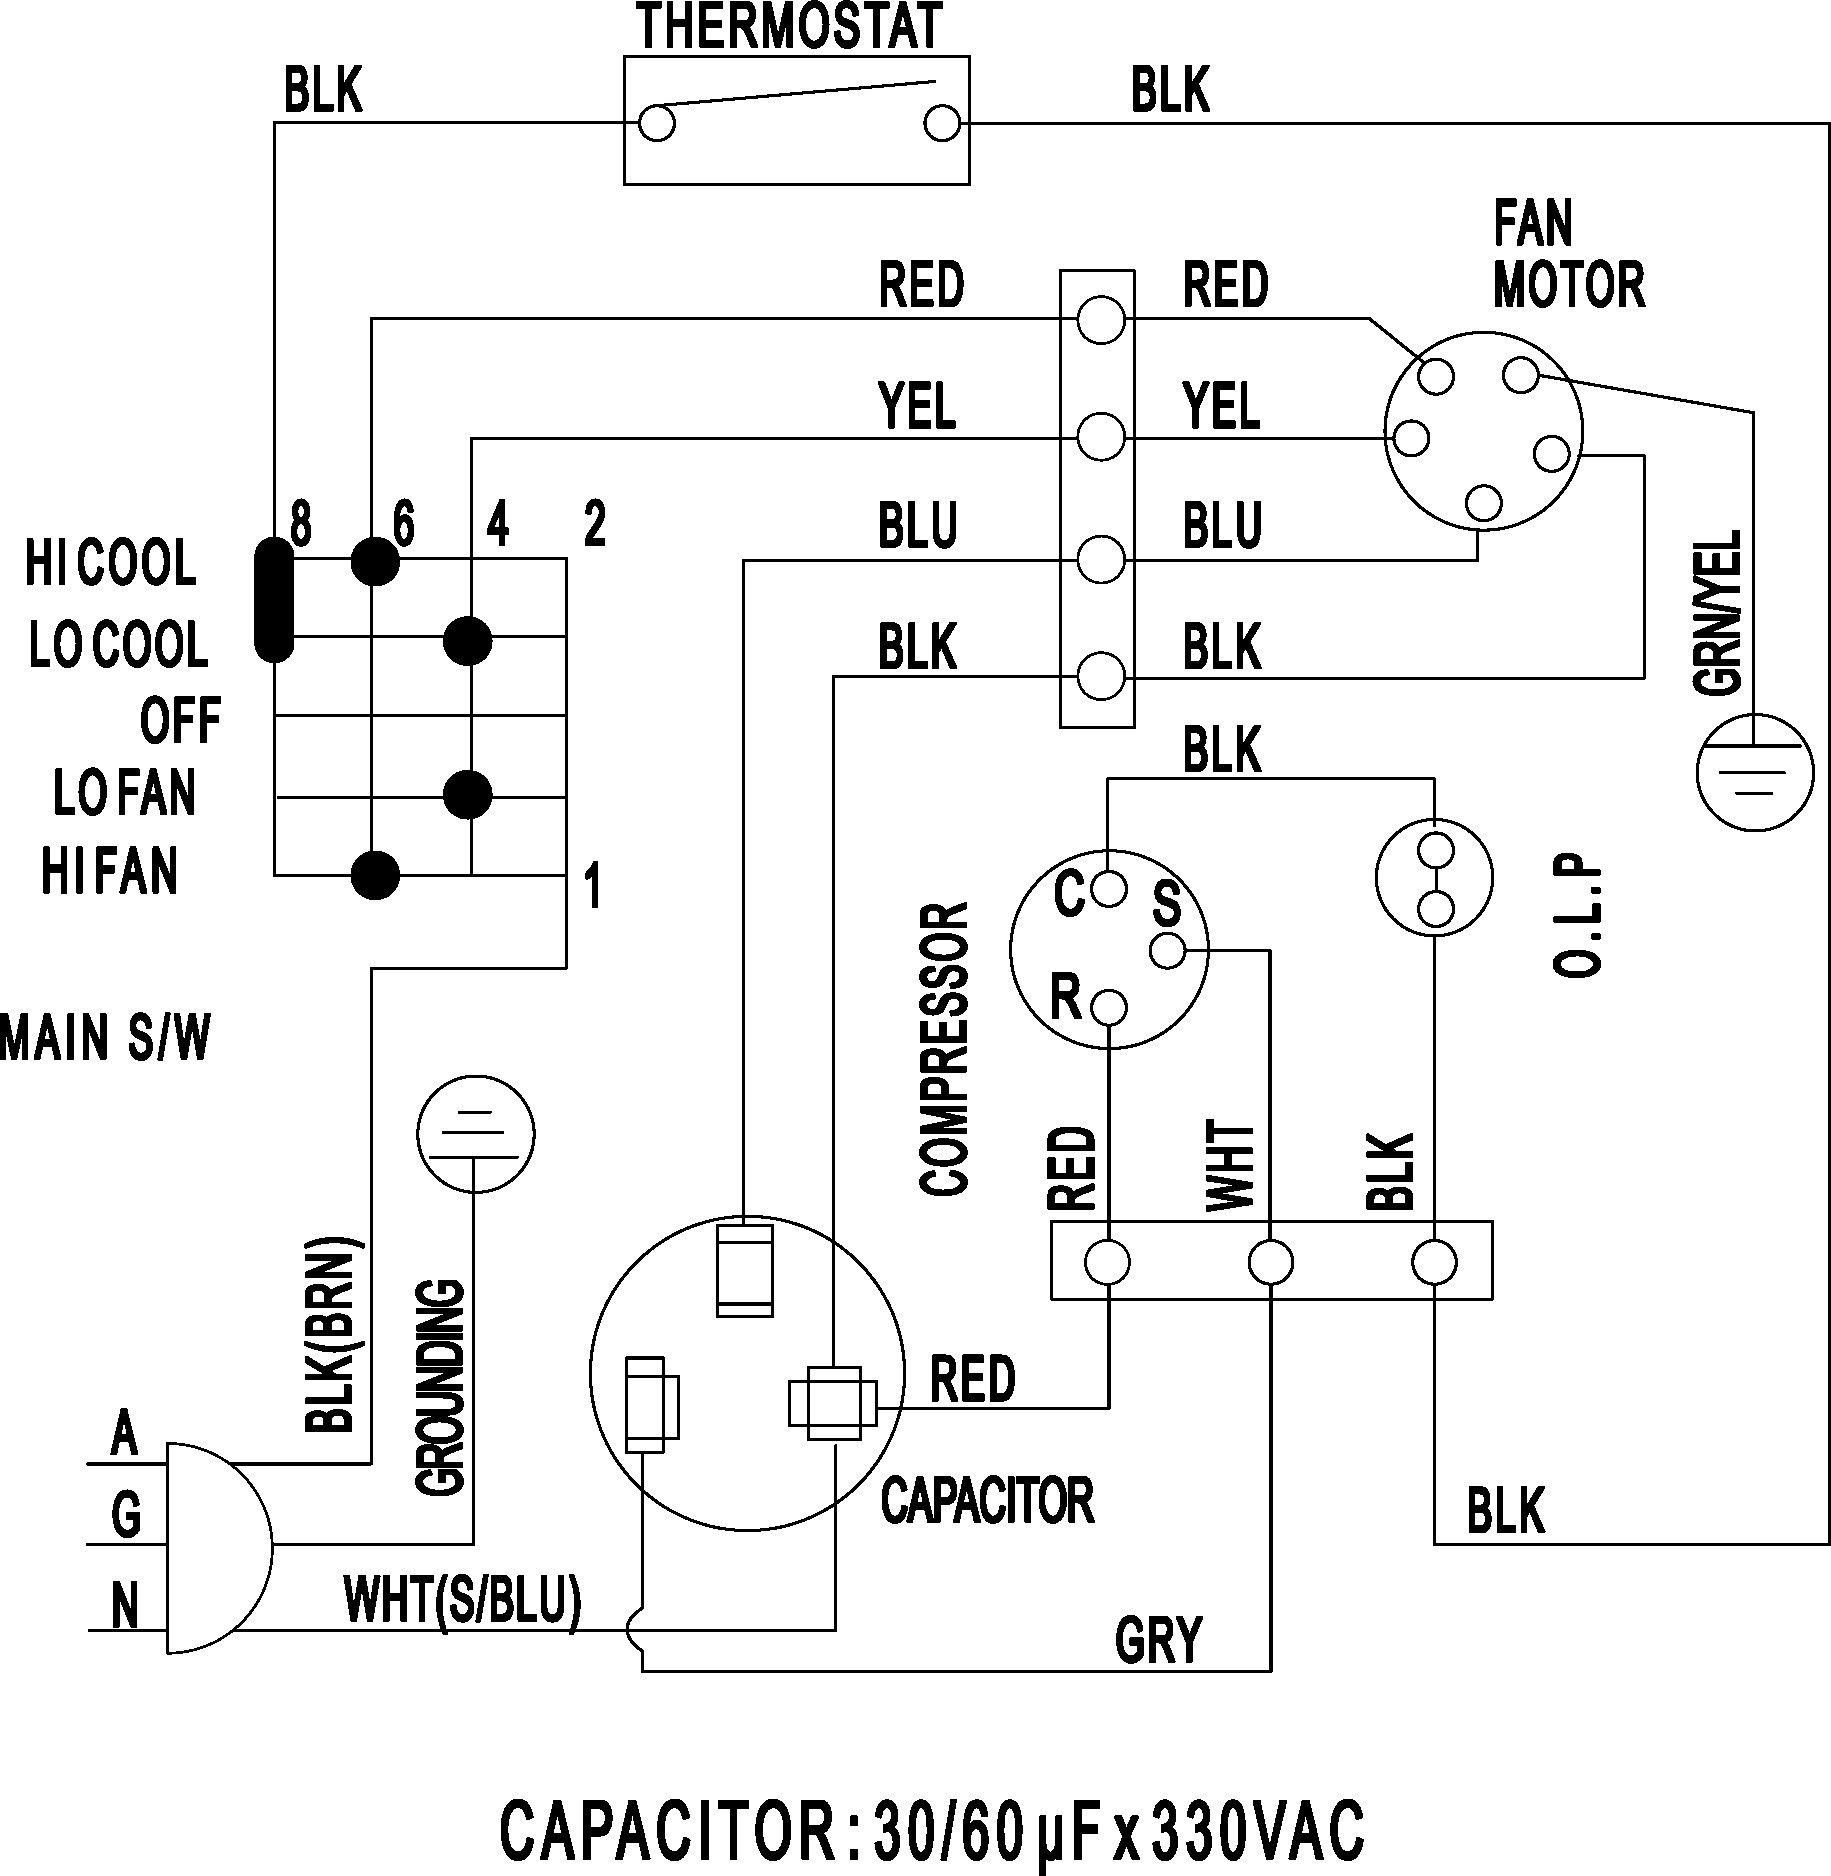 Dometic Ac Control Board Wiring Diagram